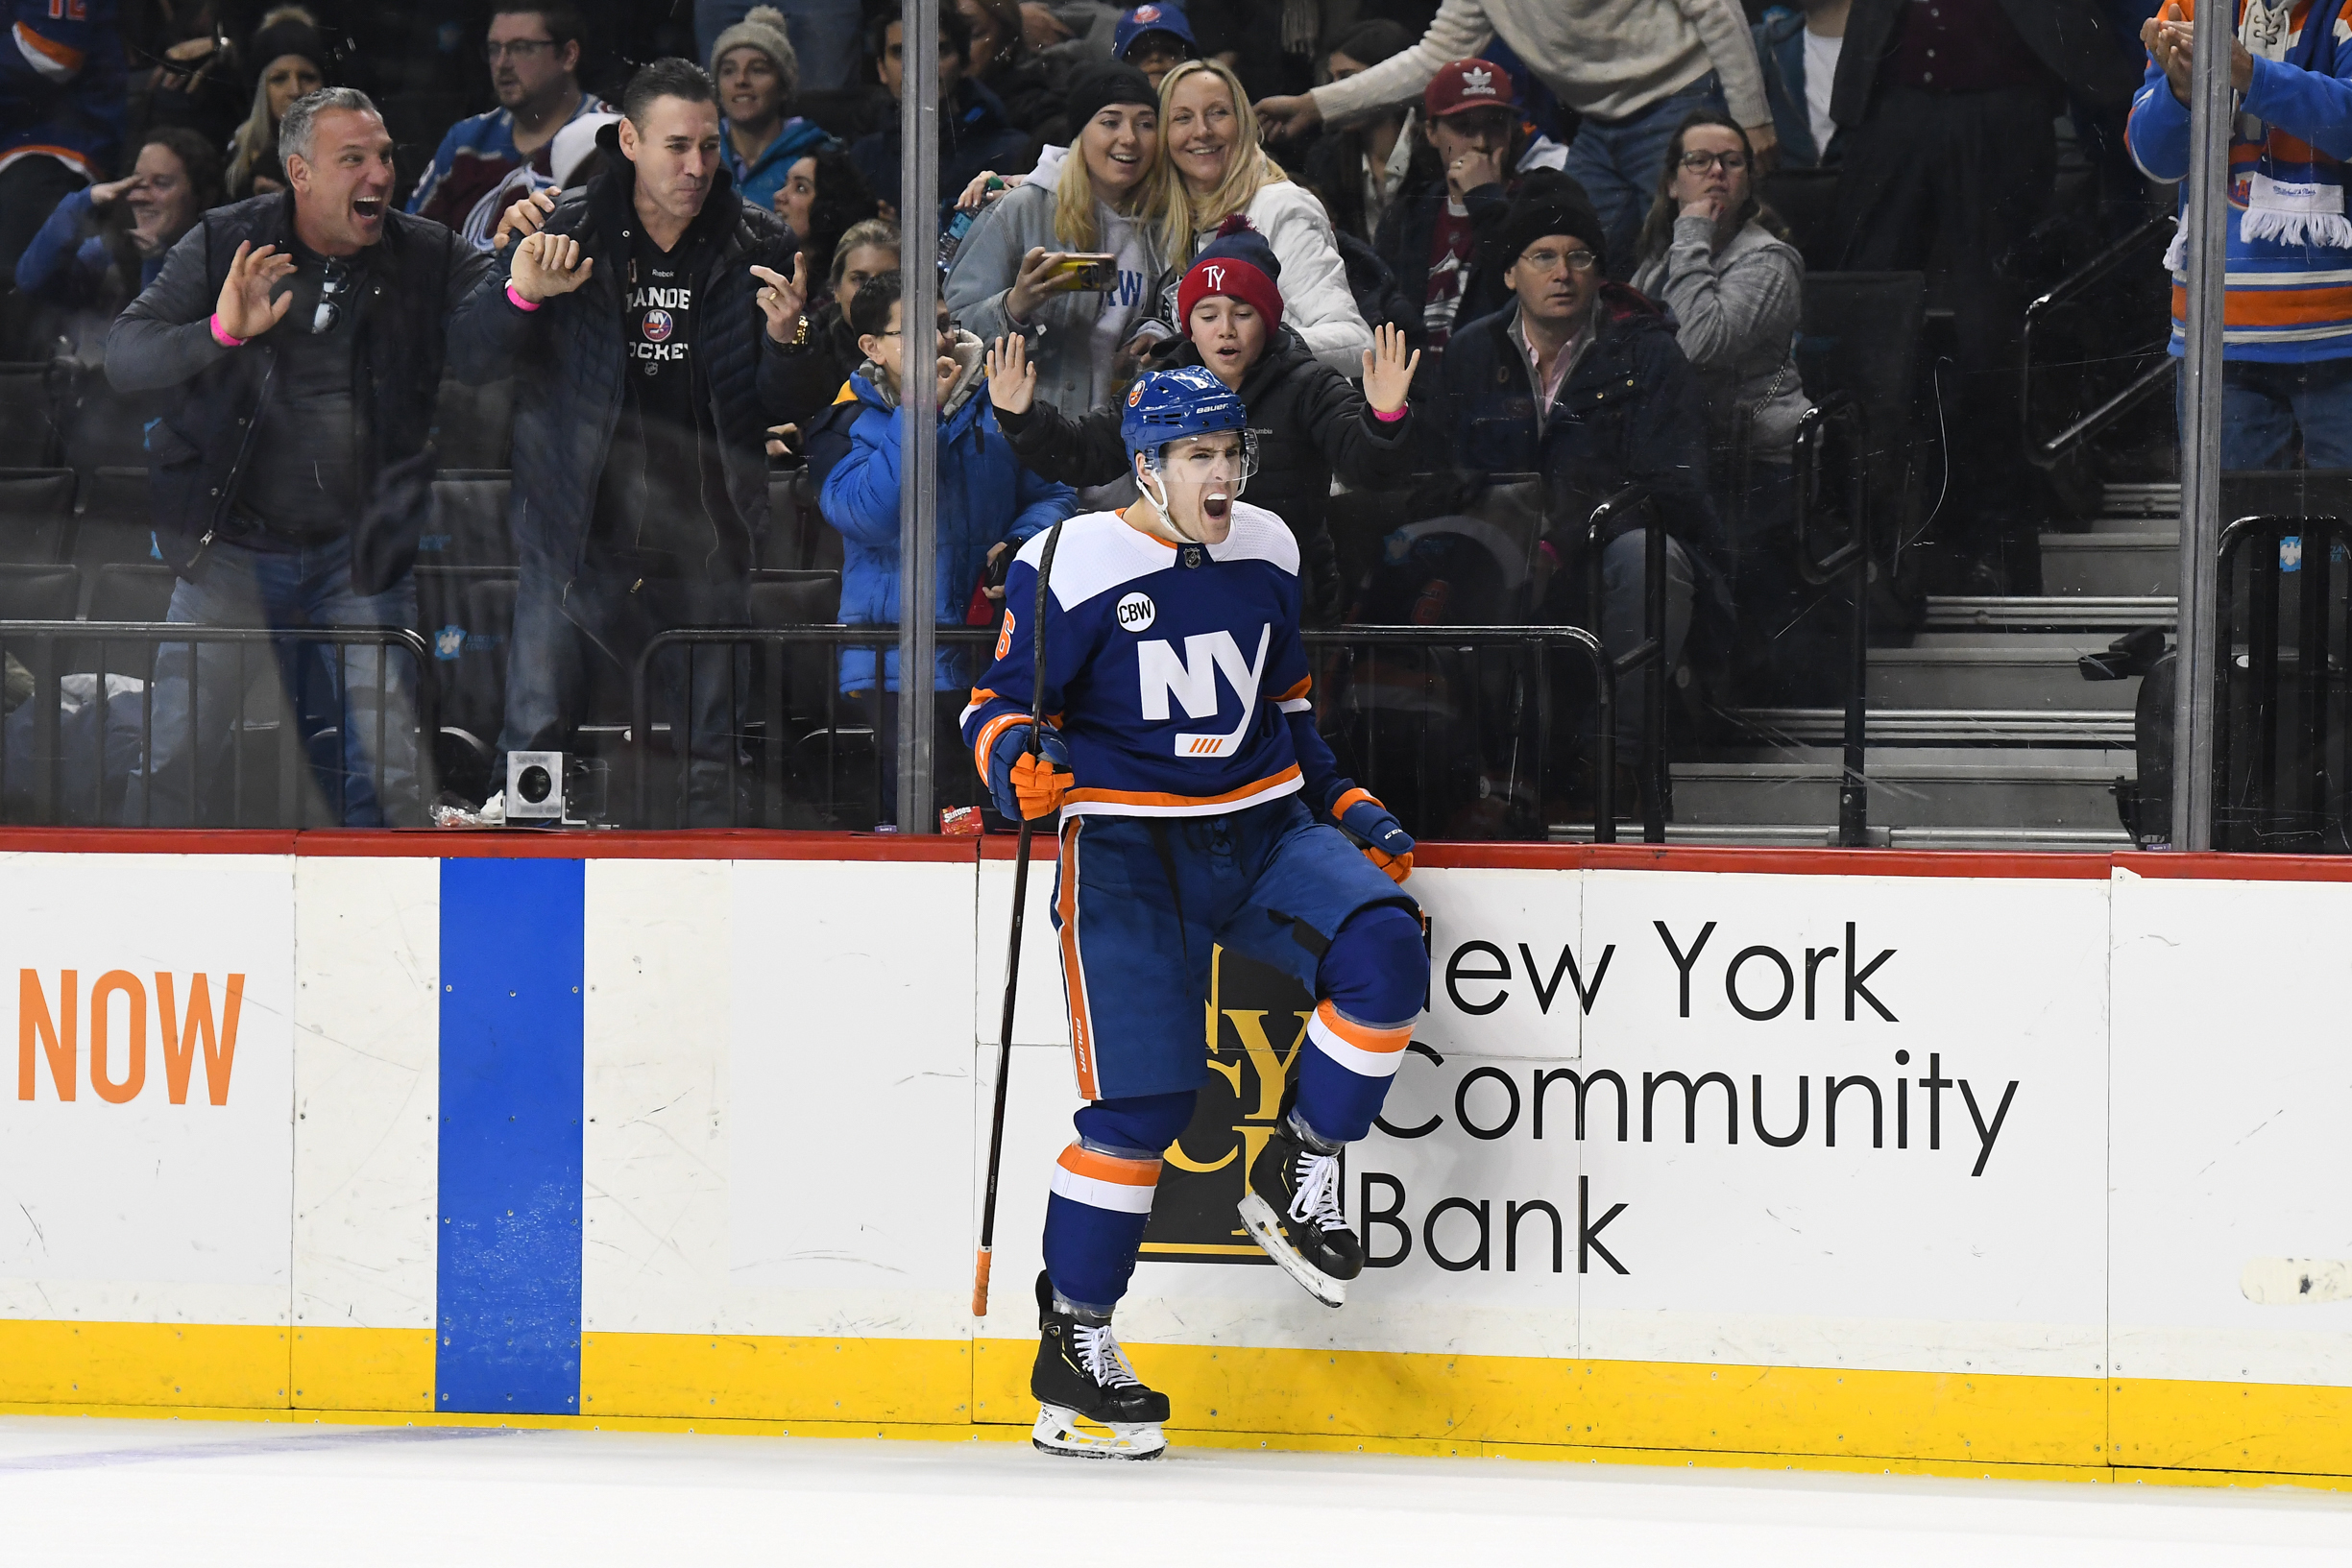 Ryan Pulock's offensive prowess beginning to show for Isles